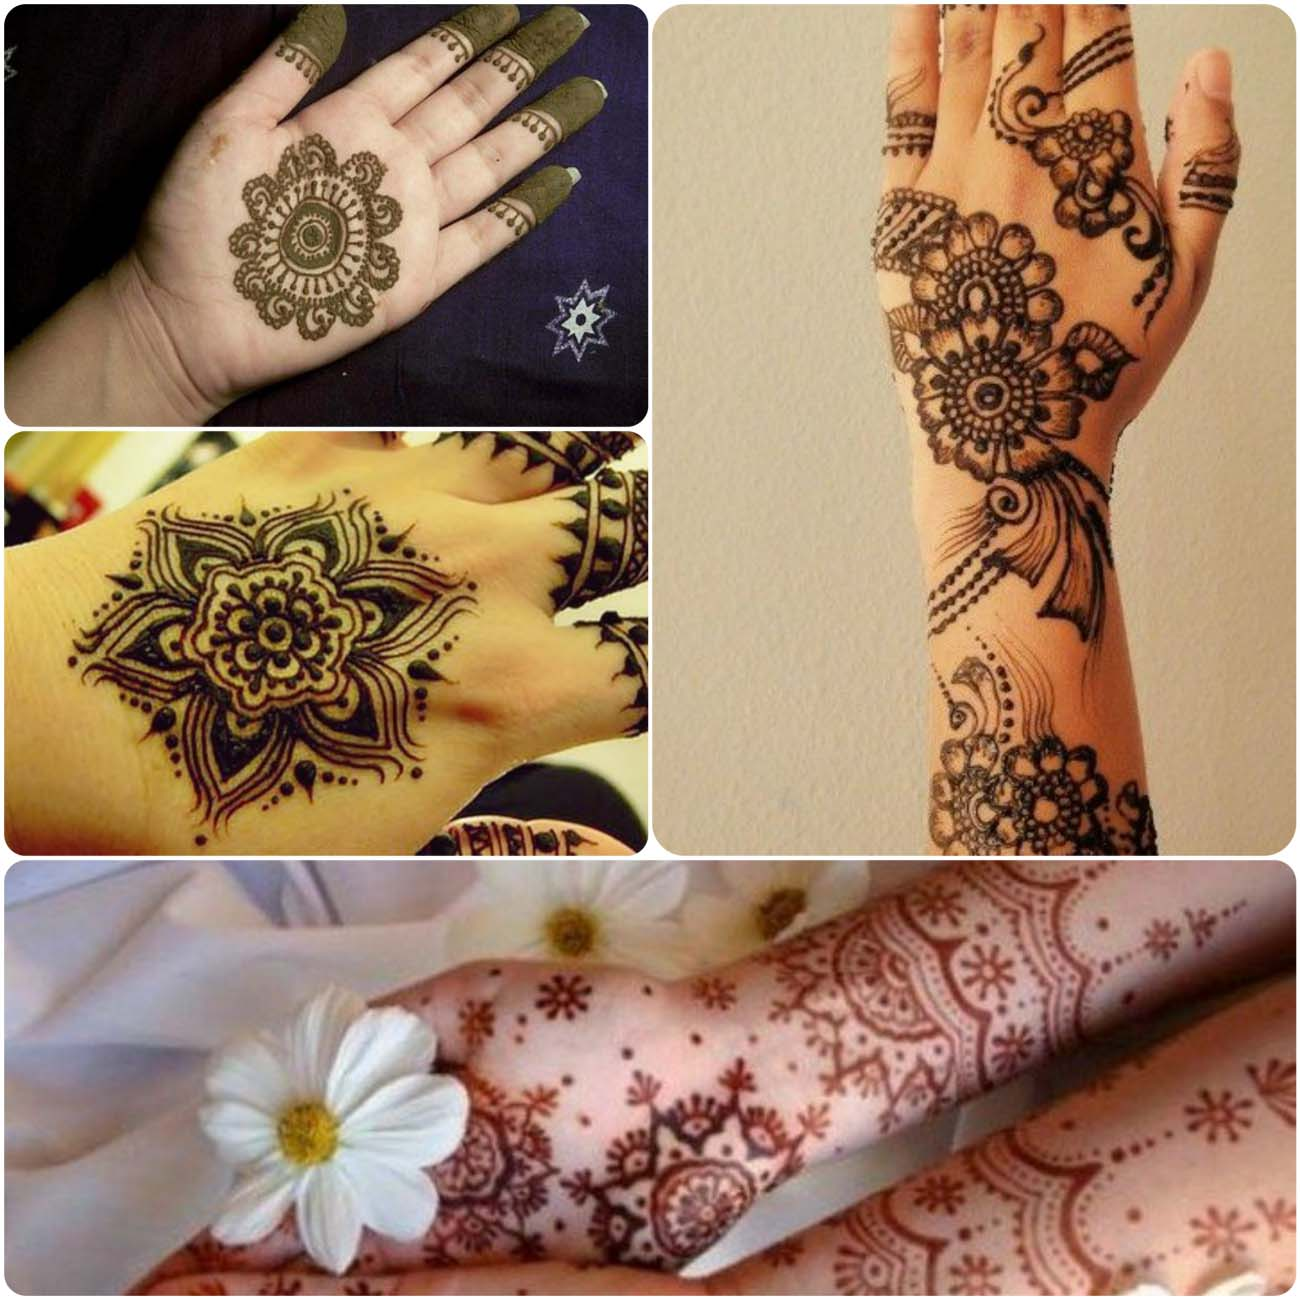 Mehndi design 2017 for small hands - Excellent Some People Prefer Simplest Designs Of Mehndi That Does Not Cover Much Of Your Hand But Looks Like A Tattoo Or So For Them The Ring Pattern Will